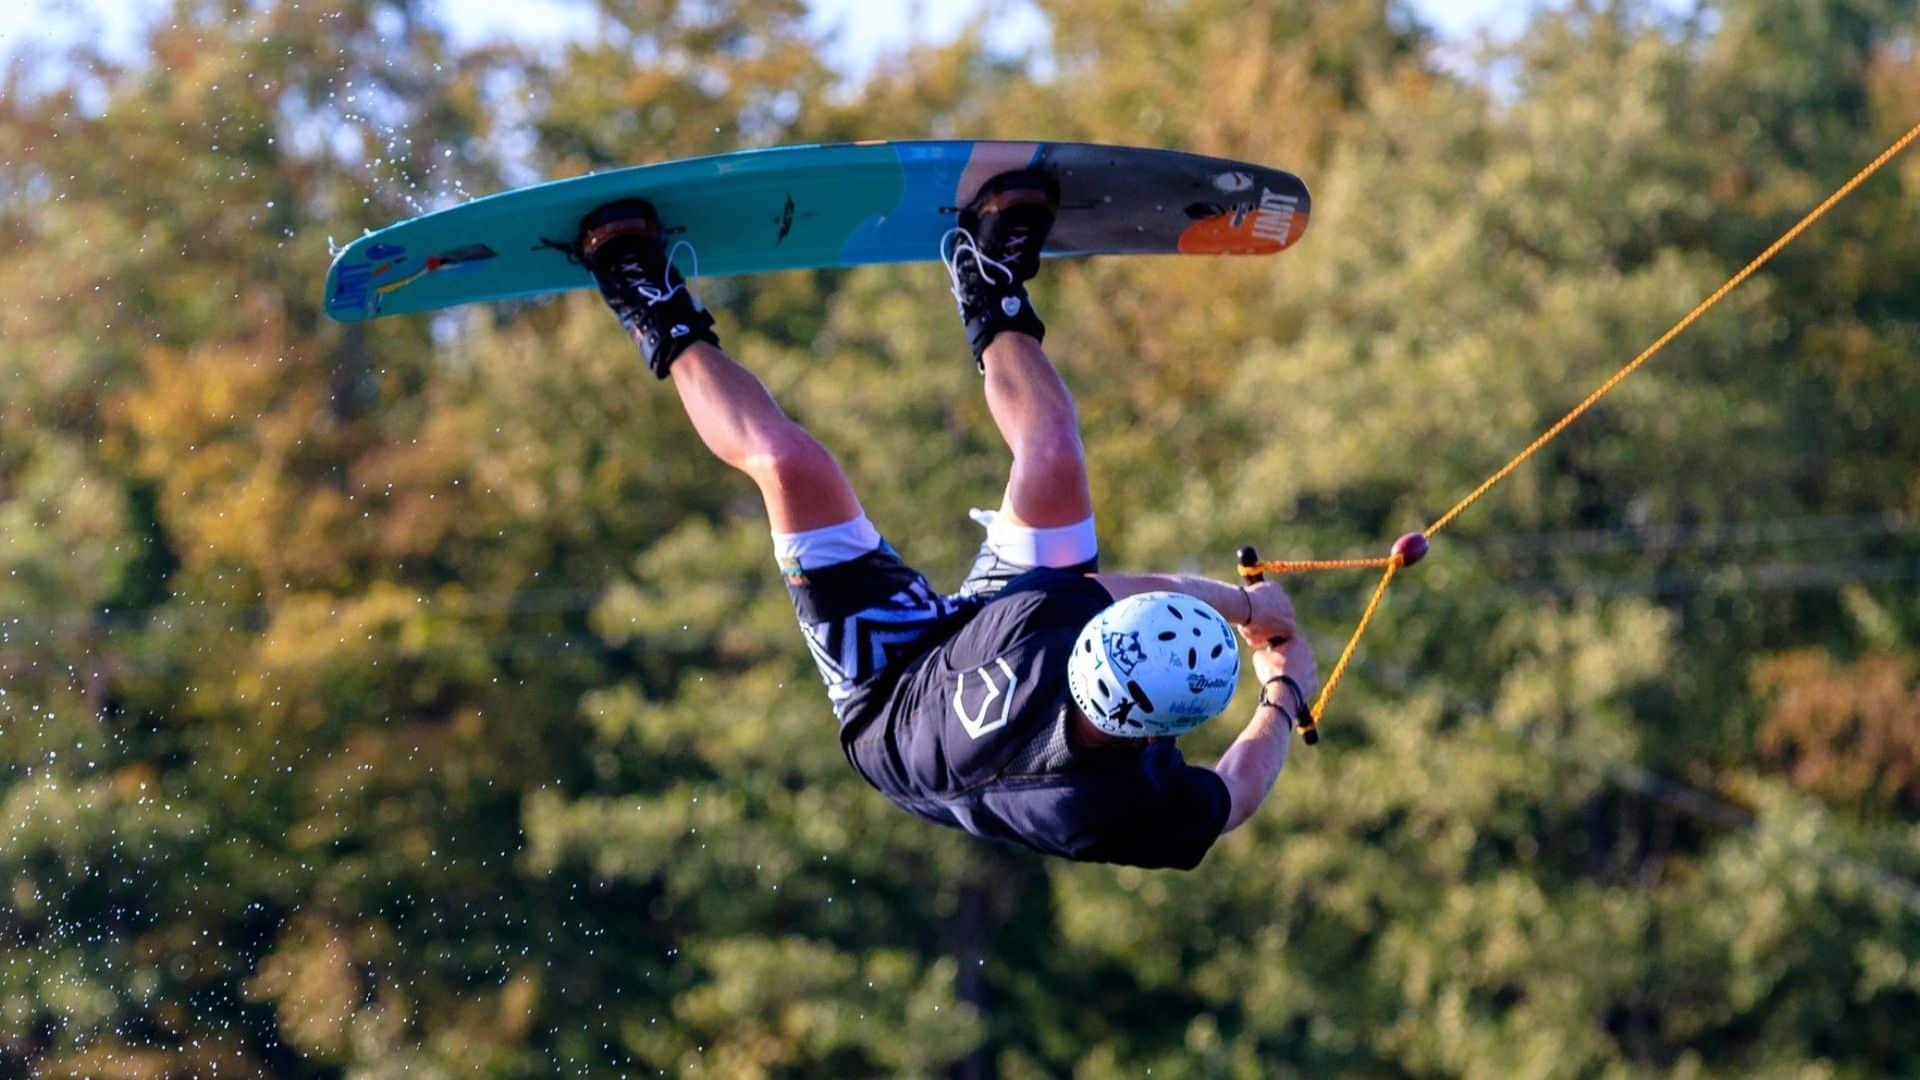 Best Ronix Wakeboards